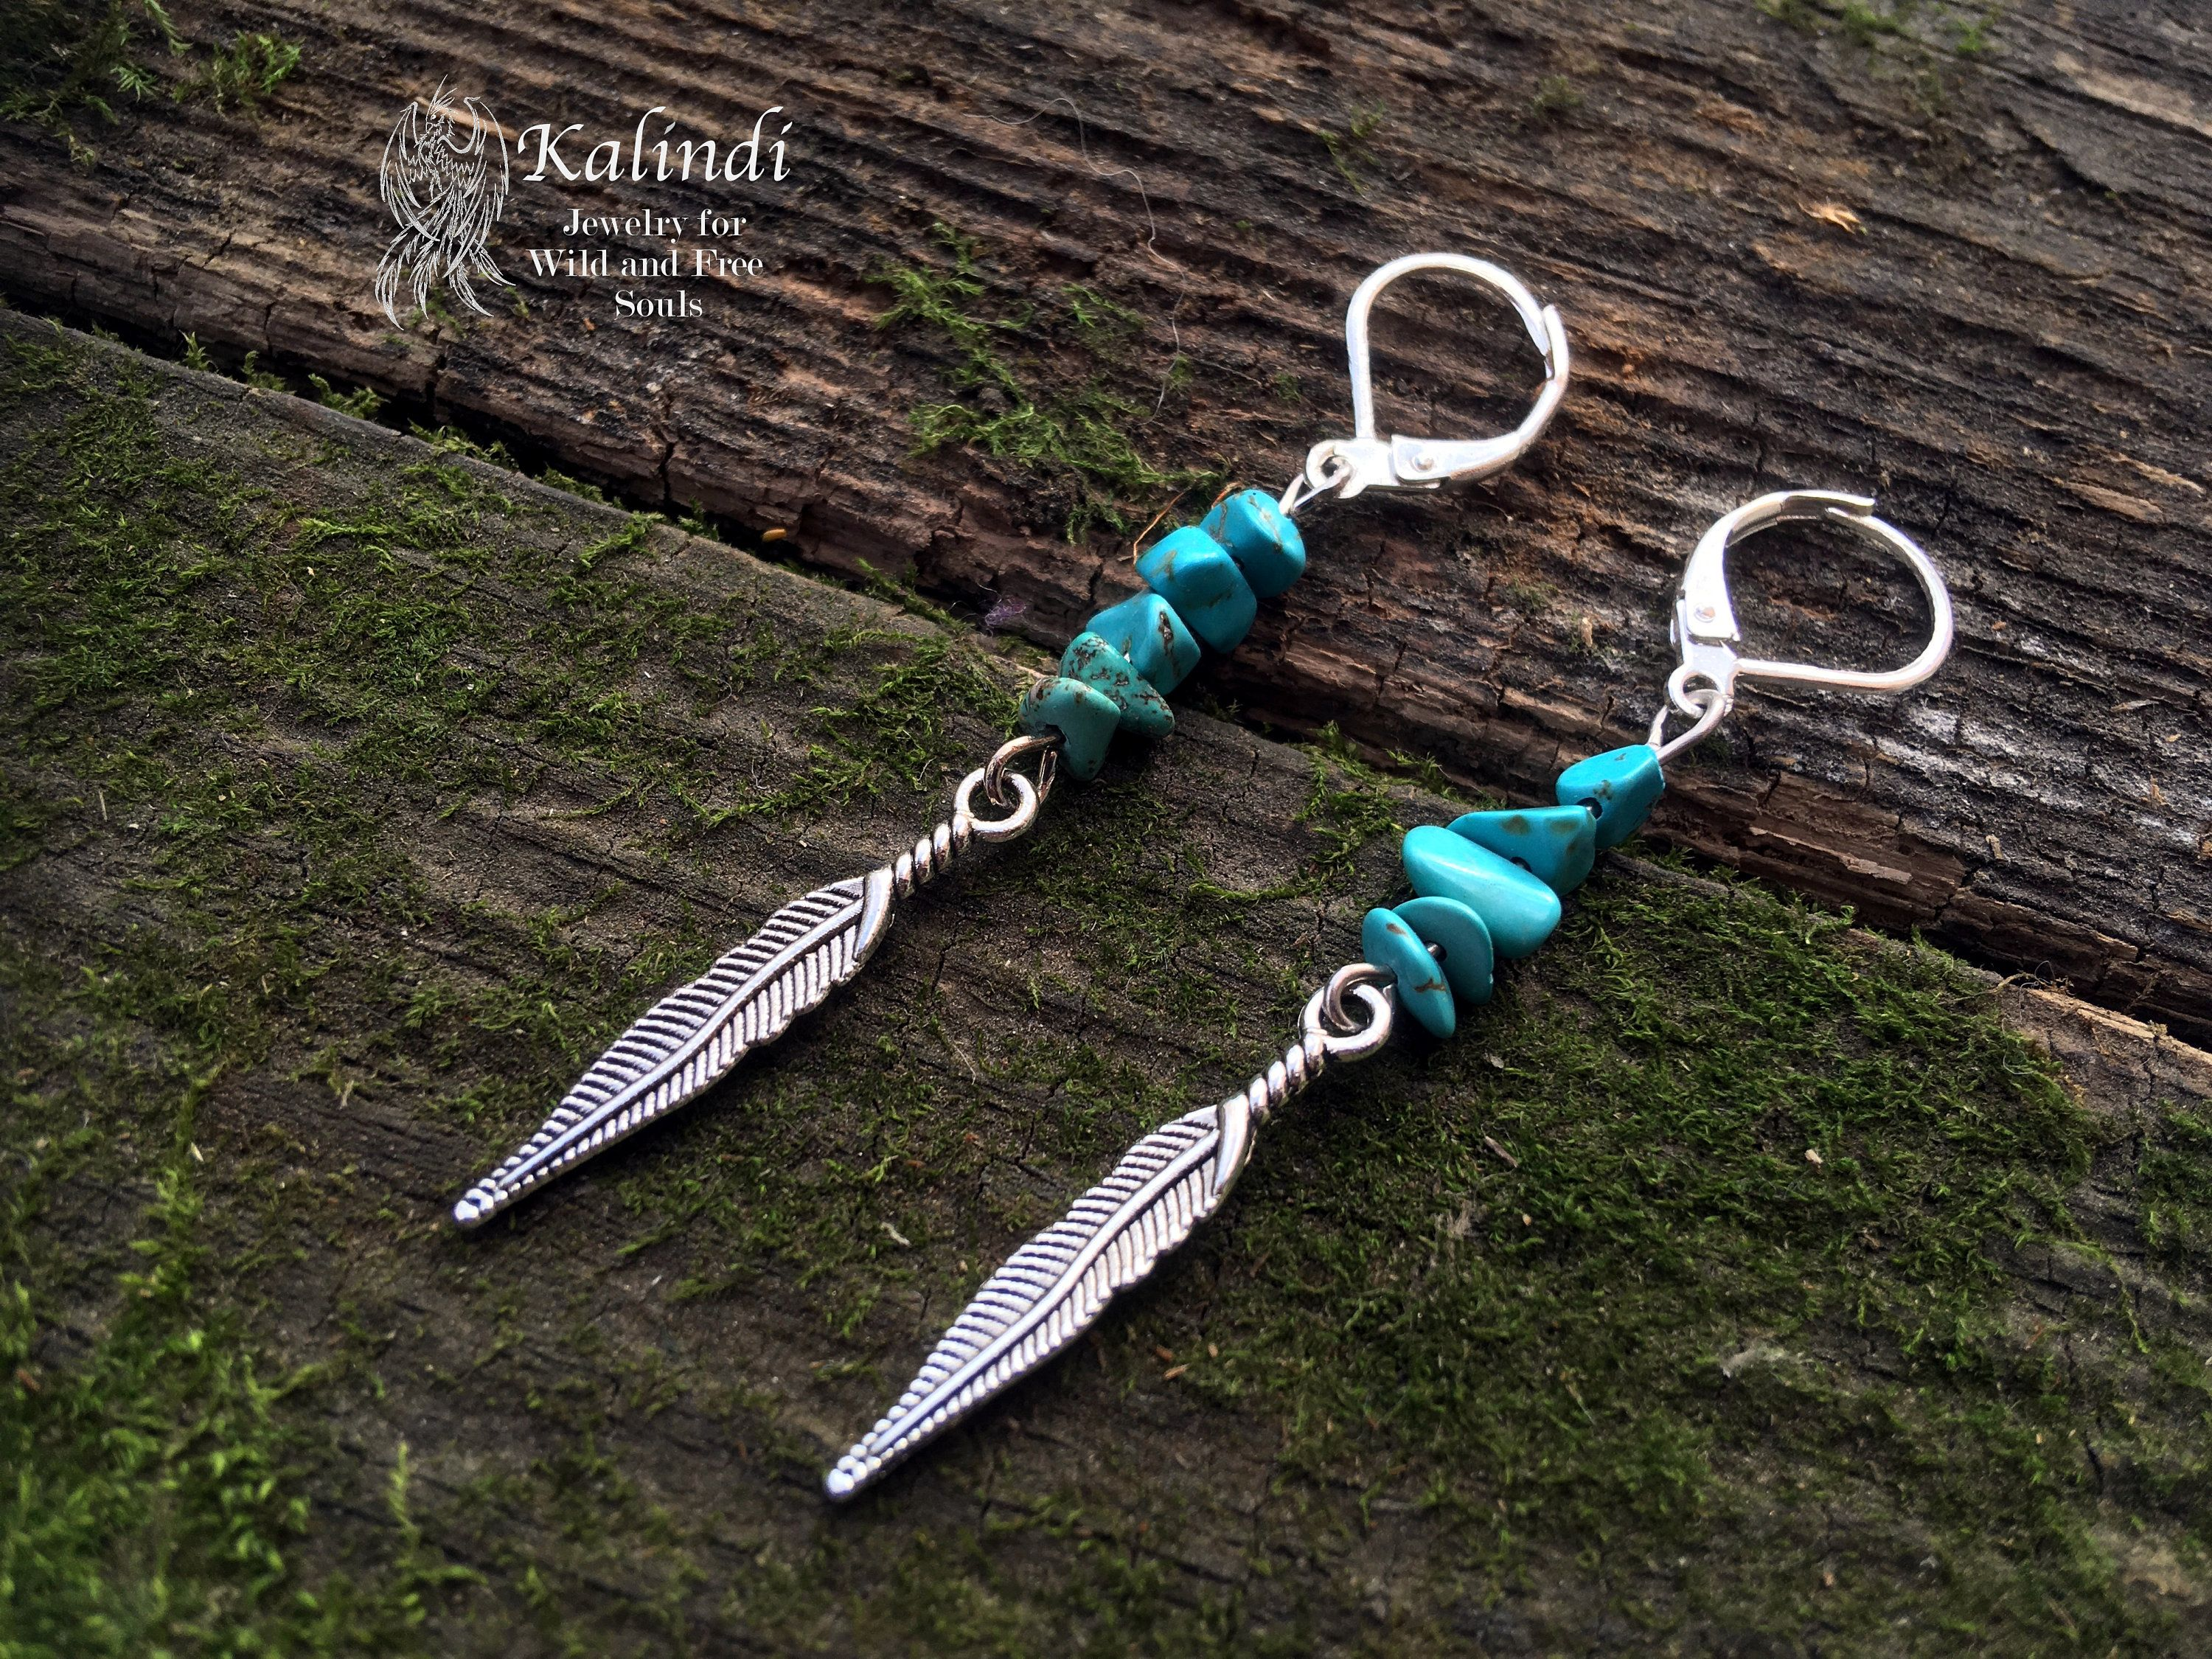 Turquoise Chip Silver Arrow Earrings Dangle /& Drop Gift Handcrafted Jewelry Special Occasion